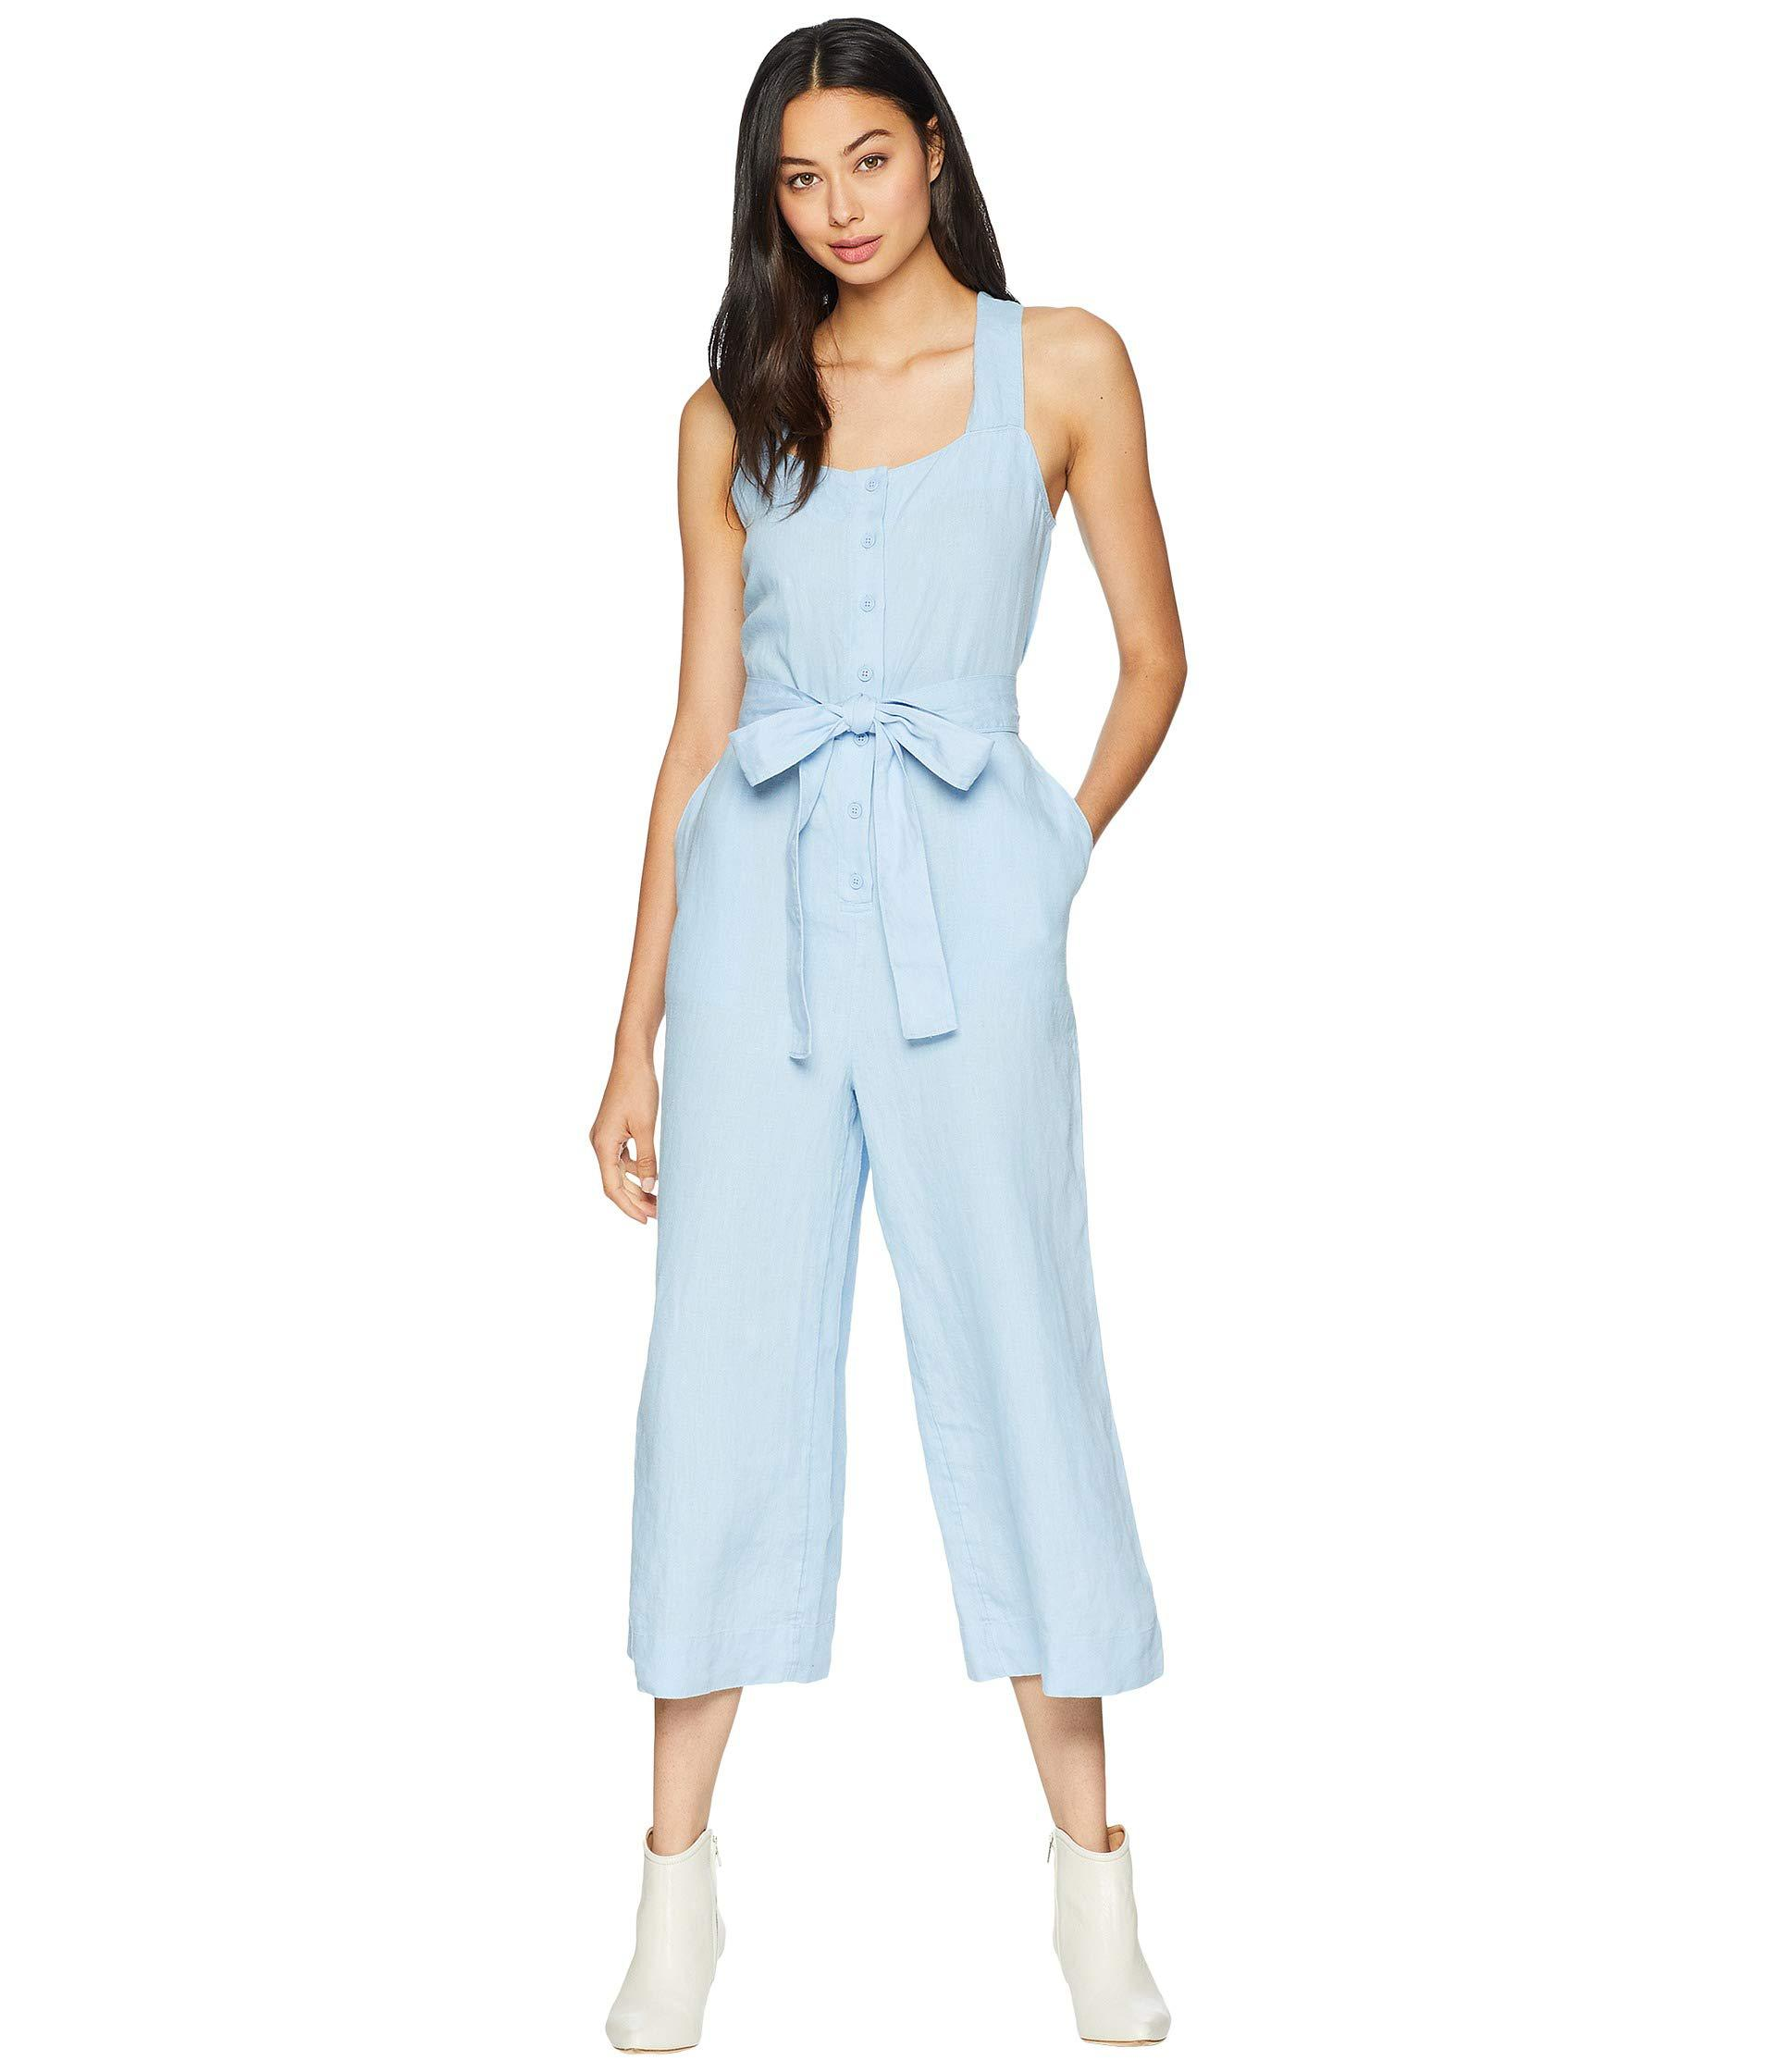 3a45f58aa3 Lyst - Juicy Couture Washed Linen Jumpsuit in Blue